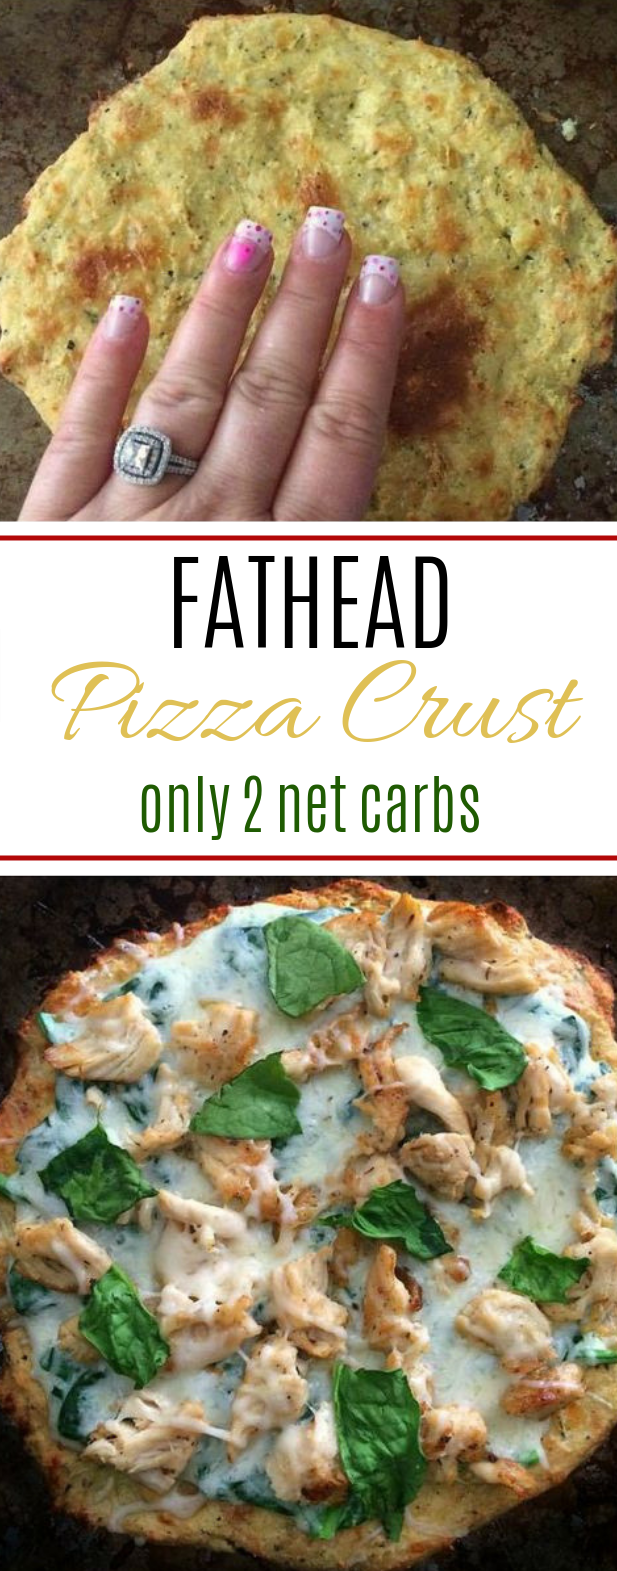 Fathead Pizza Dough #diet #lowcarb